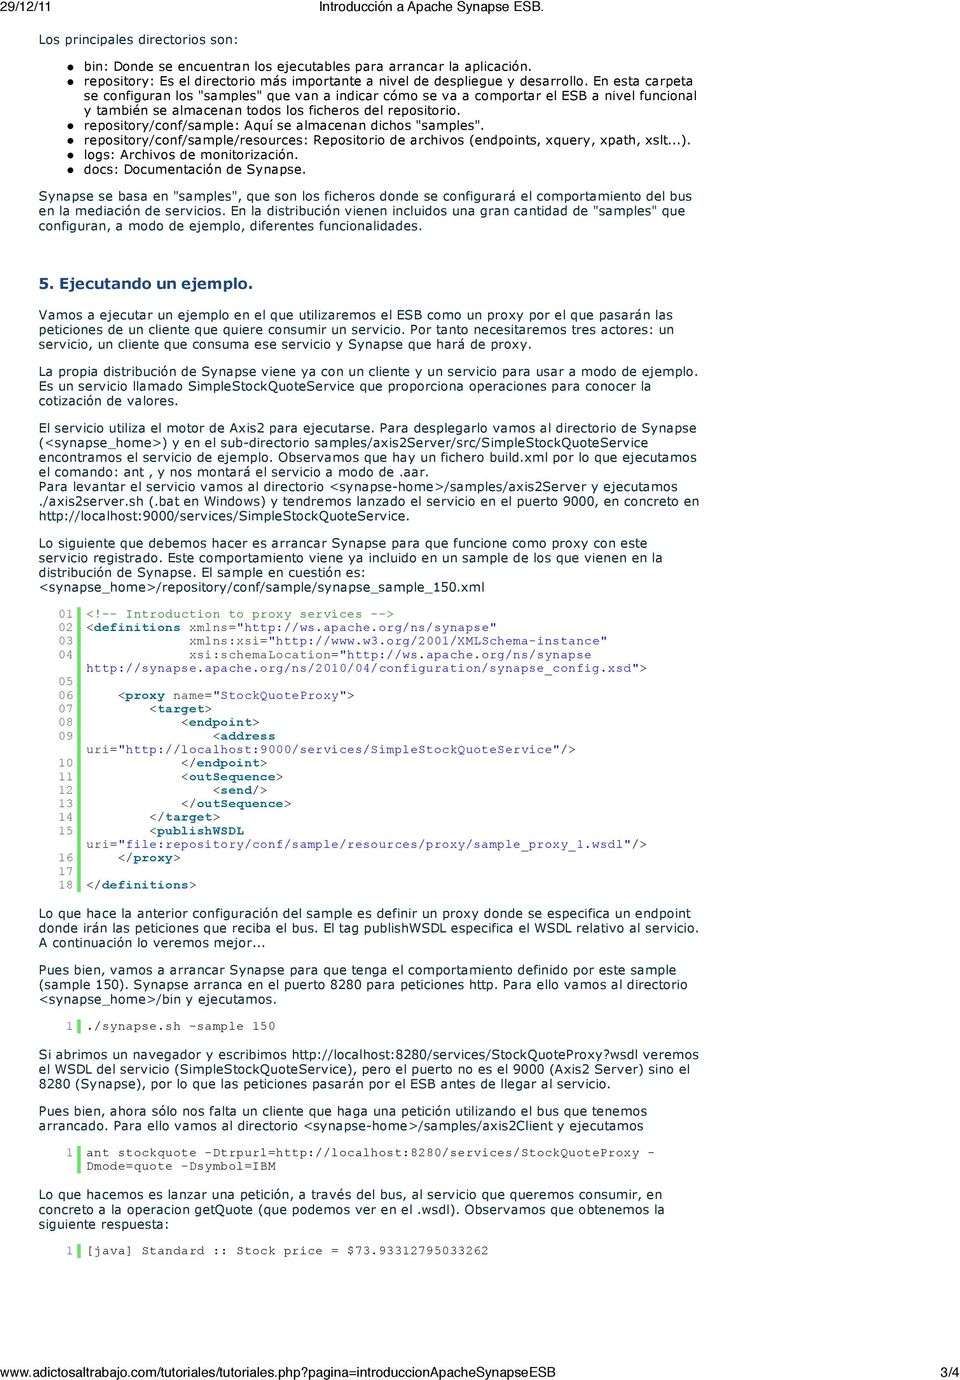 "repository/conf/sample: Aquí se almacenan dichos ""samples"". repository/conf/sample/resources: Repositorio de archivos (endpoints, xquery, xpath, xslt...). logs: Archivos de monitorización."